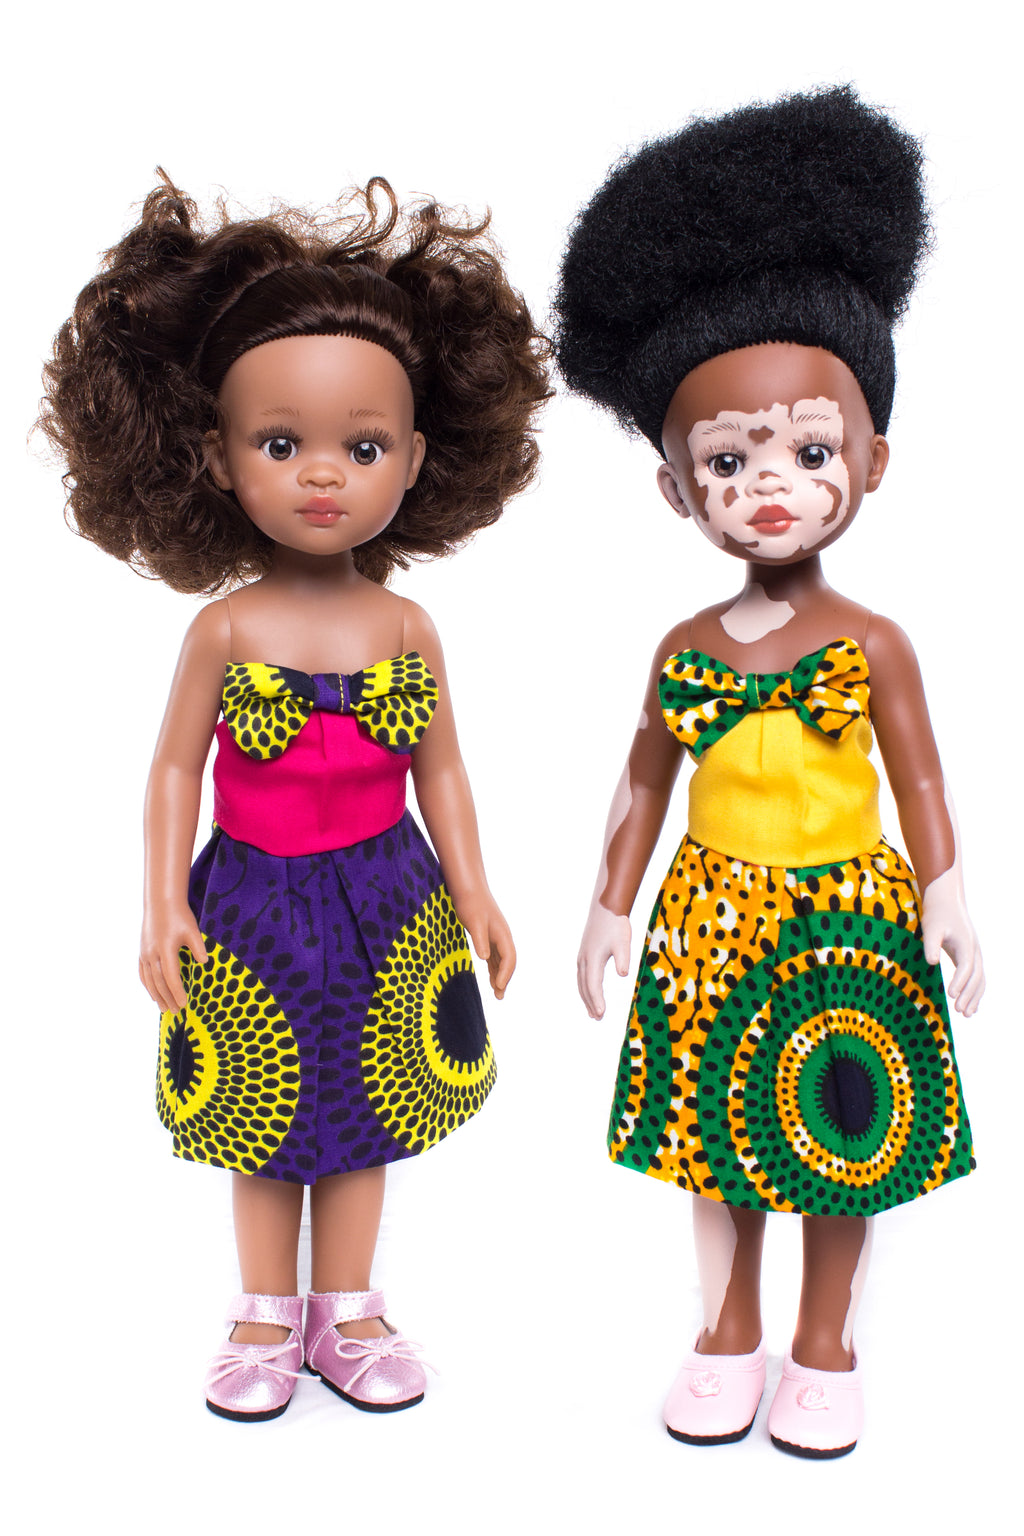 Dress for Bontle Doll (Dress Only) - Front Bow Dress - Bounce Essential Hair